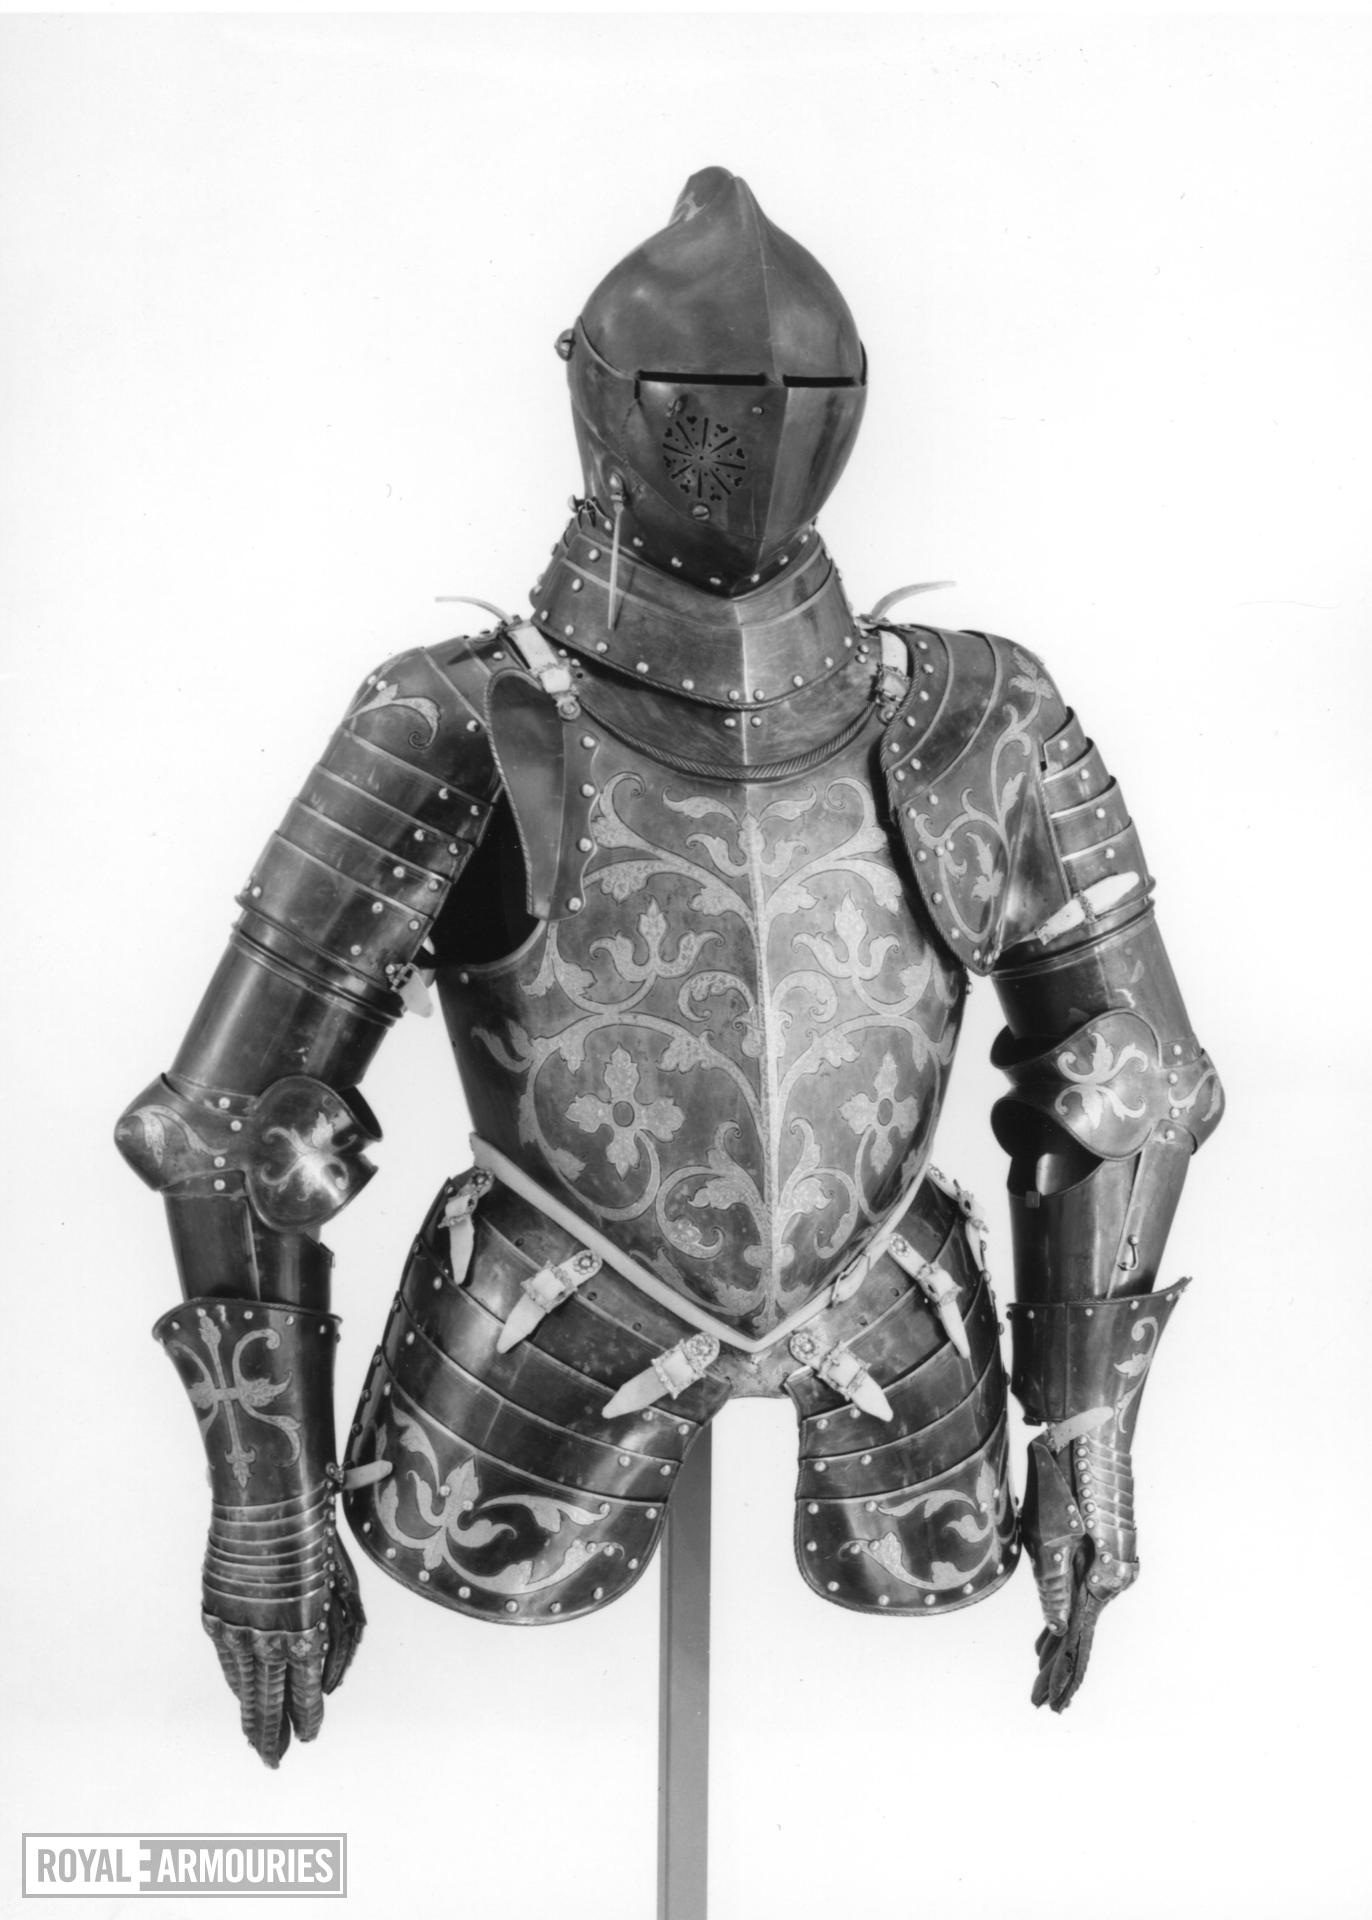 Foot combat armour of Christian I Elector of Saxony, by Anton Peffenhauser